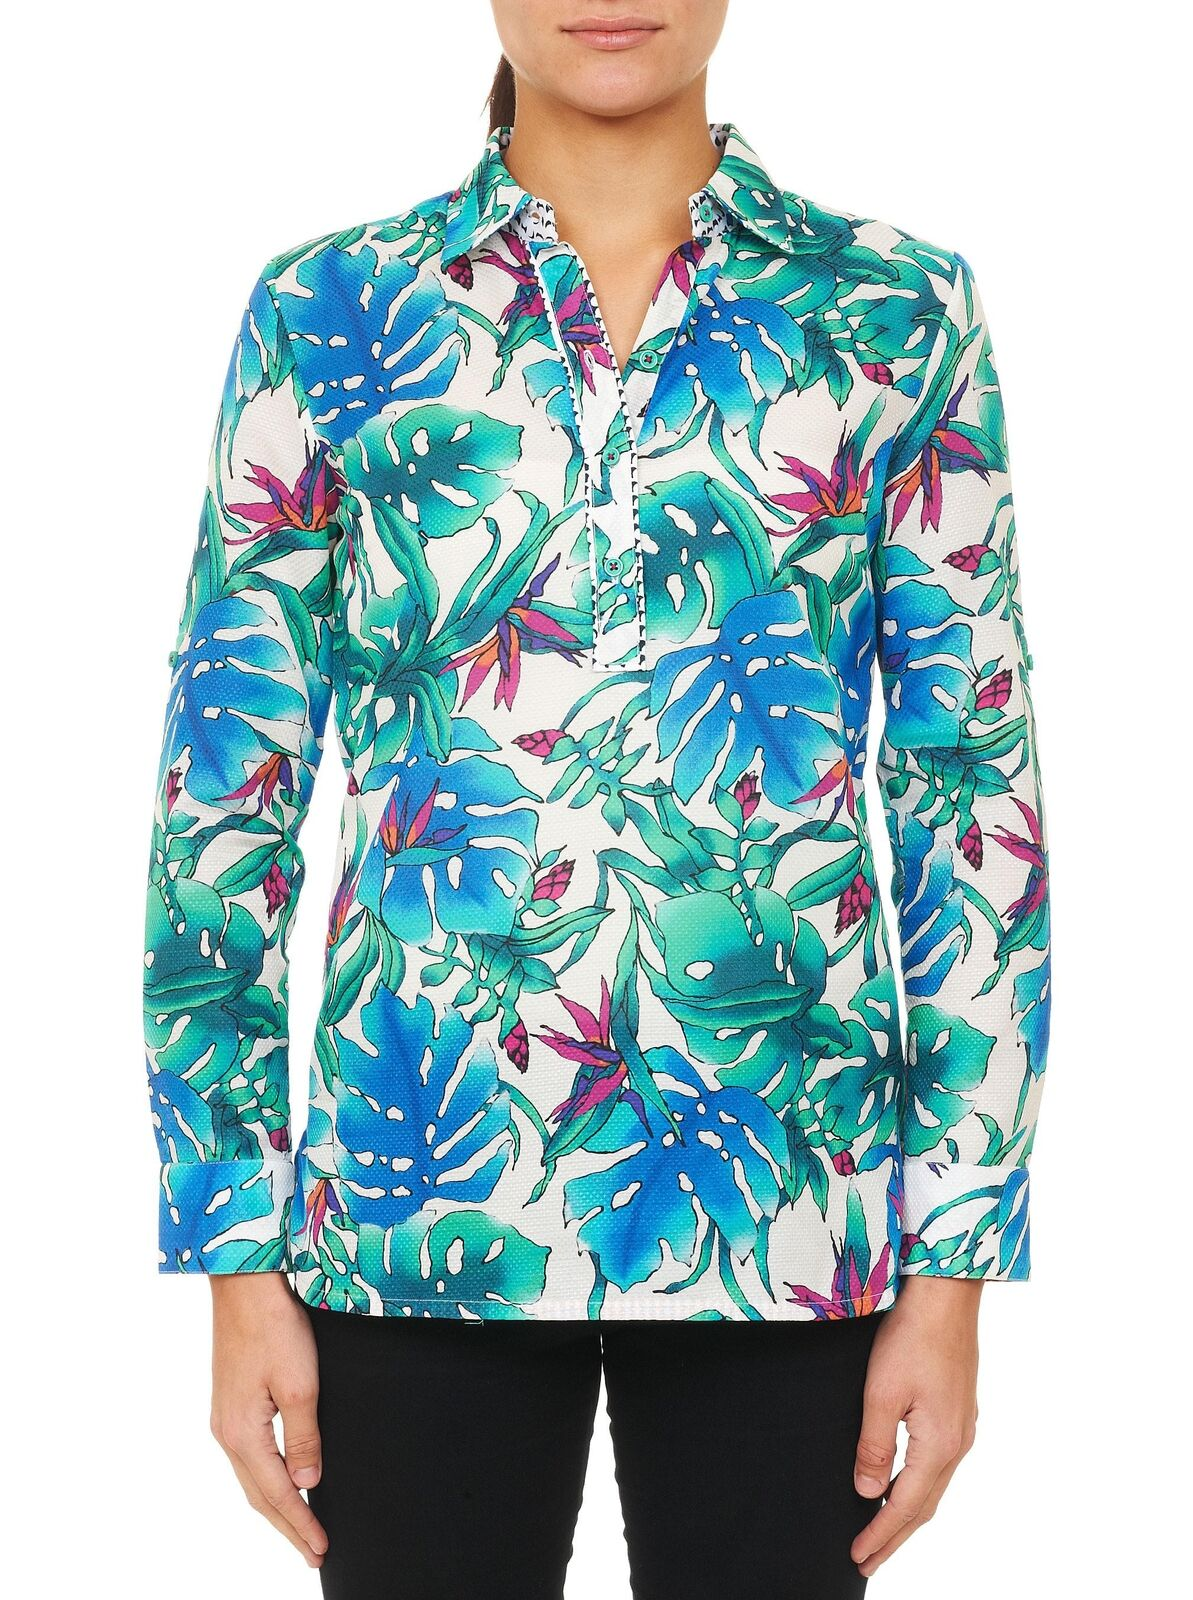 Robert Graham Woherren NWT Birds of Paradise Farbeful Shirt Größe Small